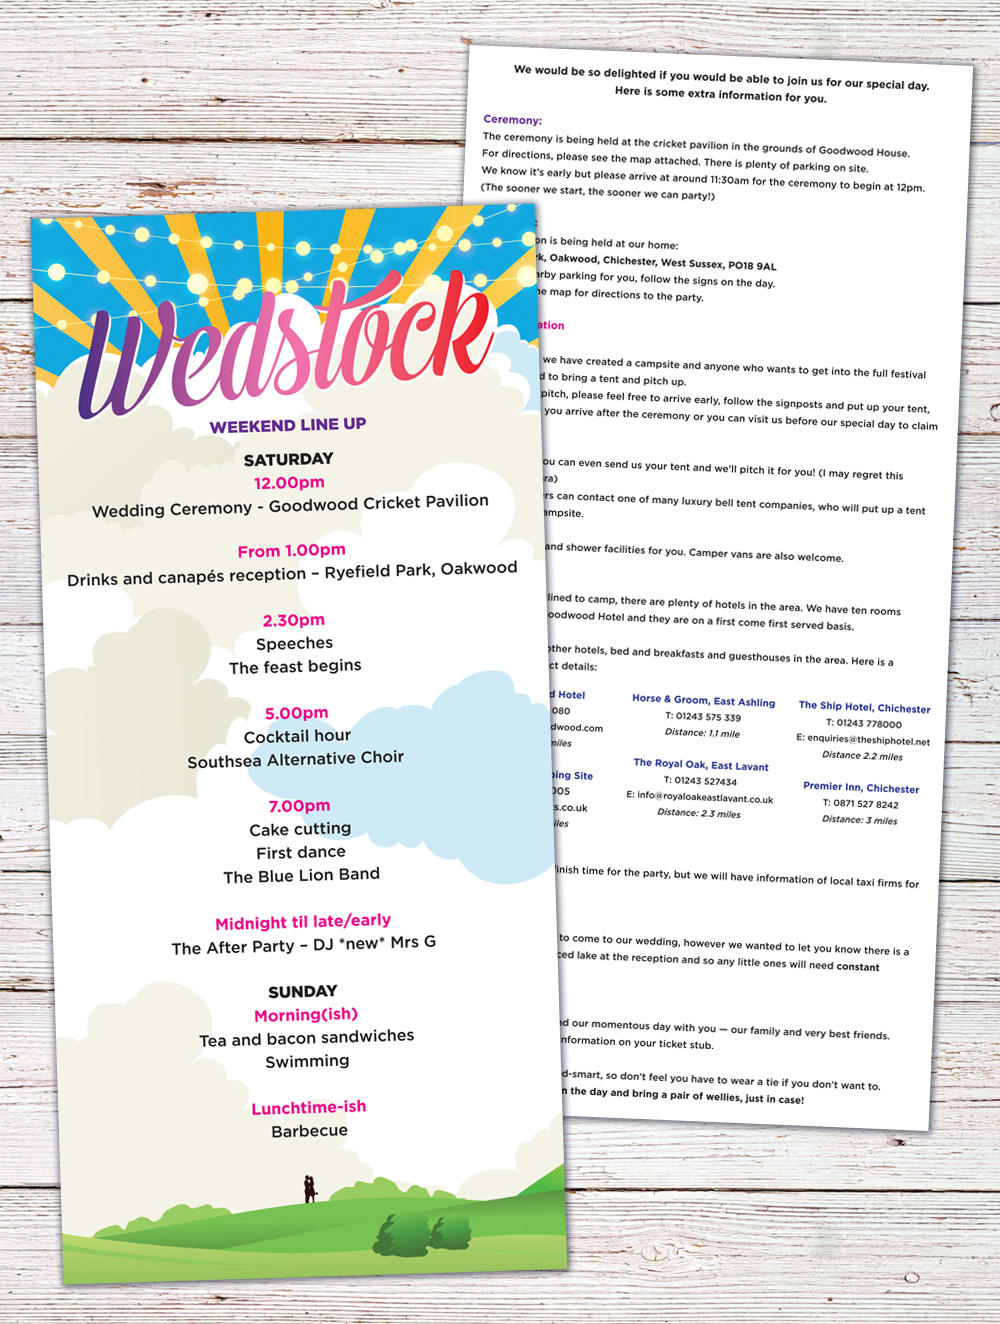 wedstock wedfest wedding invites